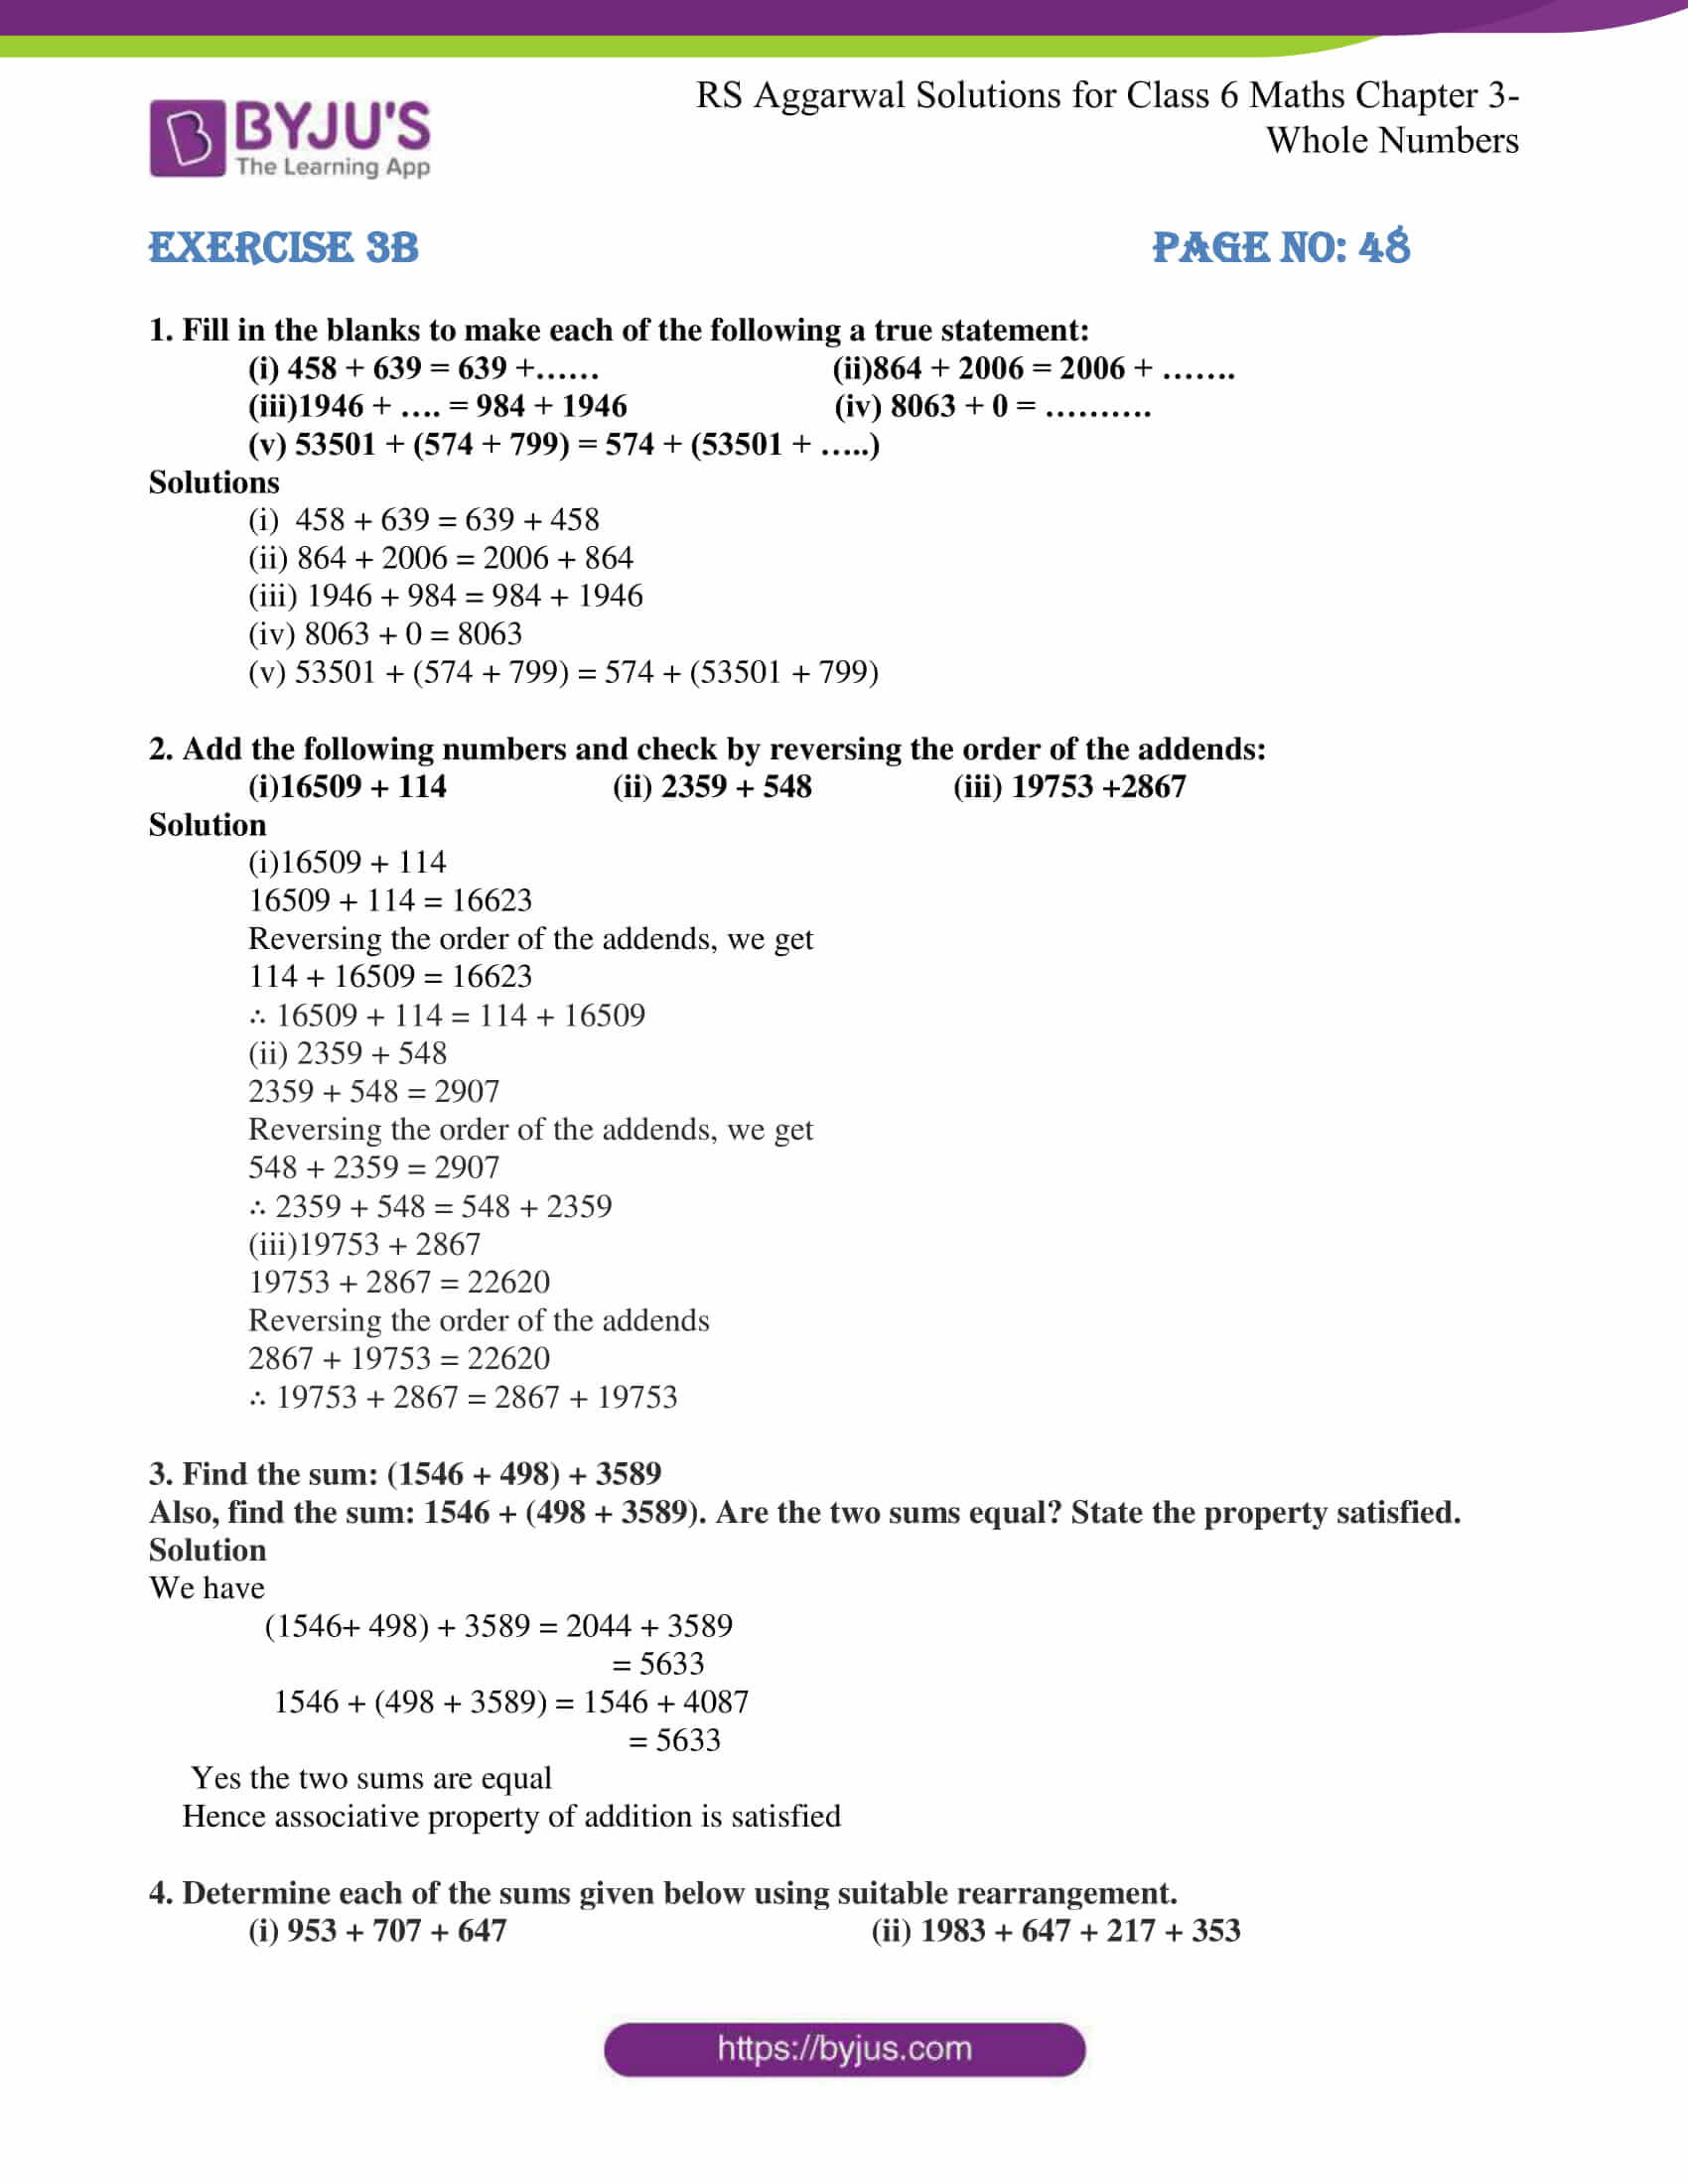 rs aggarwal soln for class 6 maths chapter 3 whole numbers ex b 1